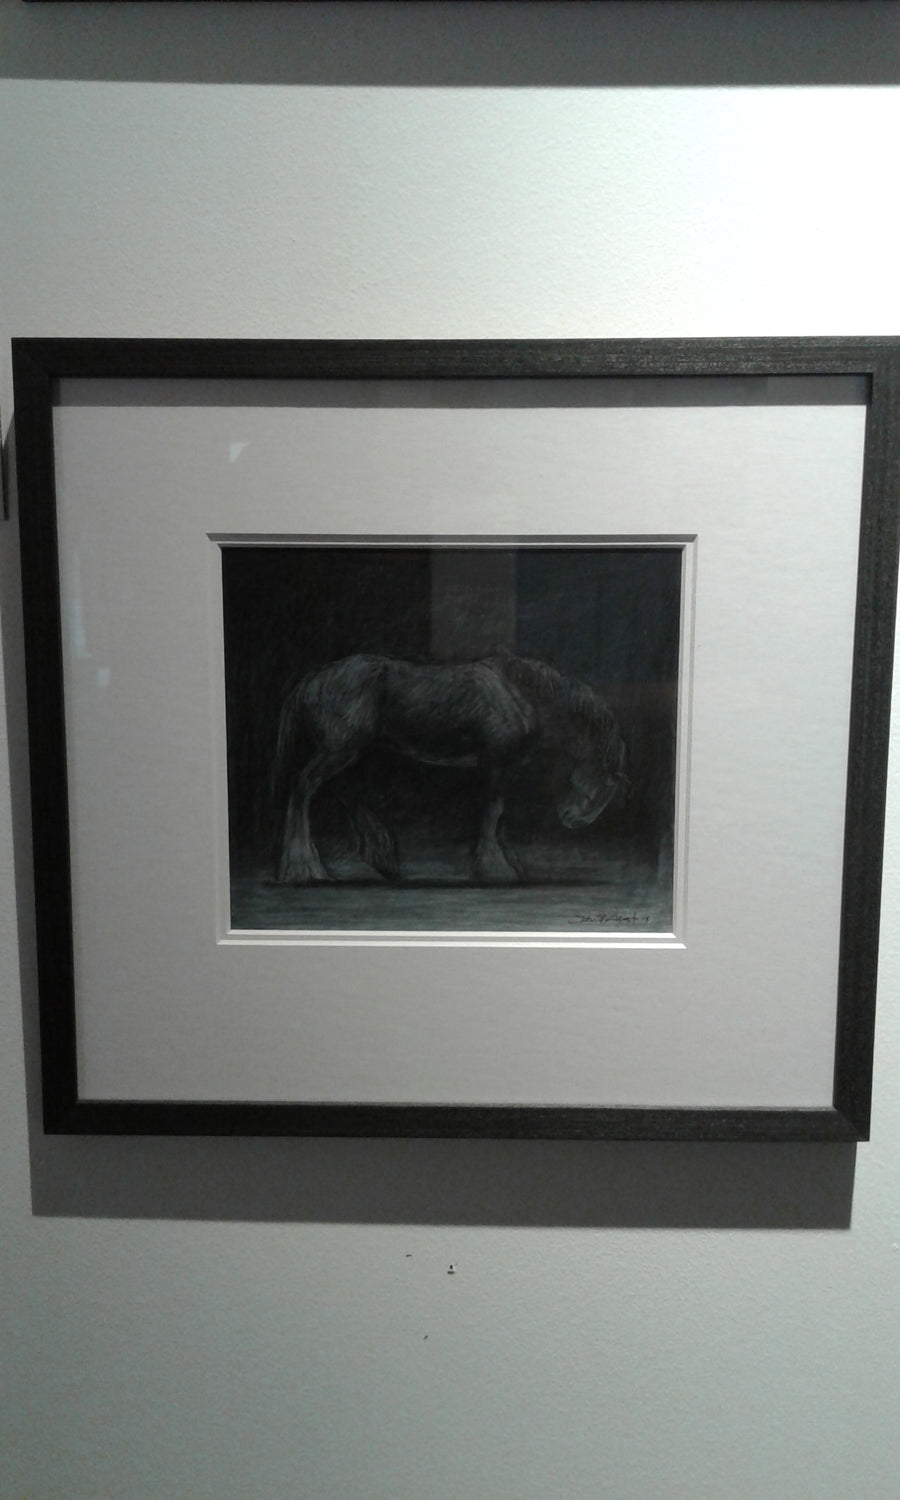 Night shadows (heavy horse) - framed original art